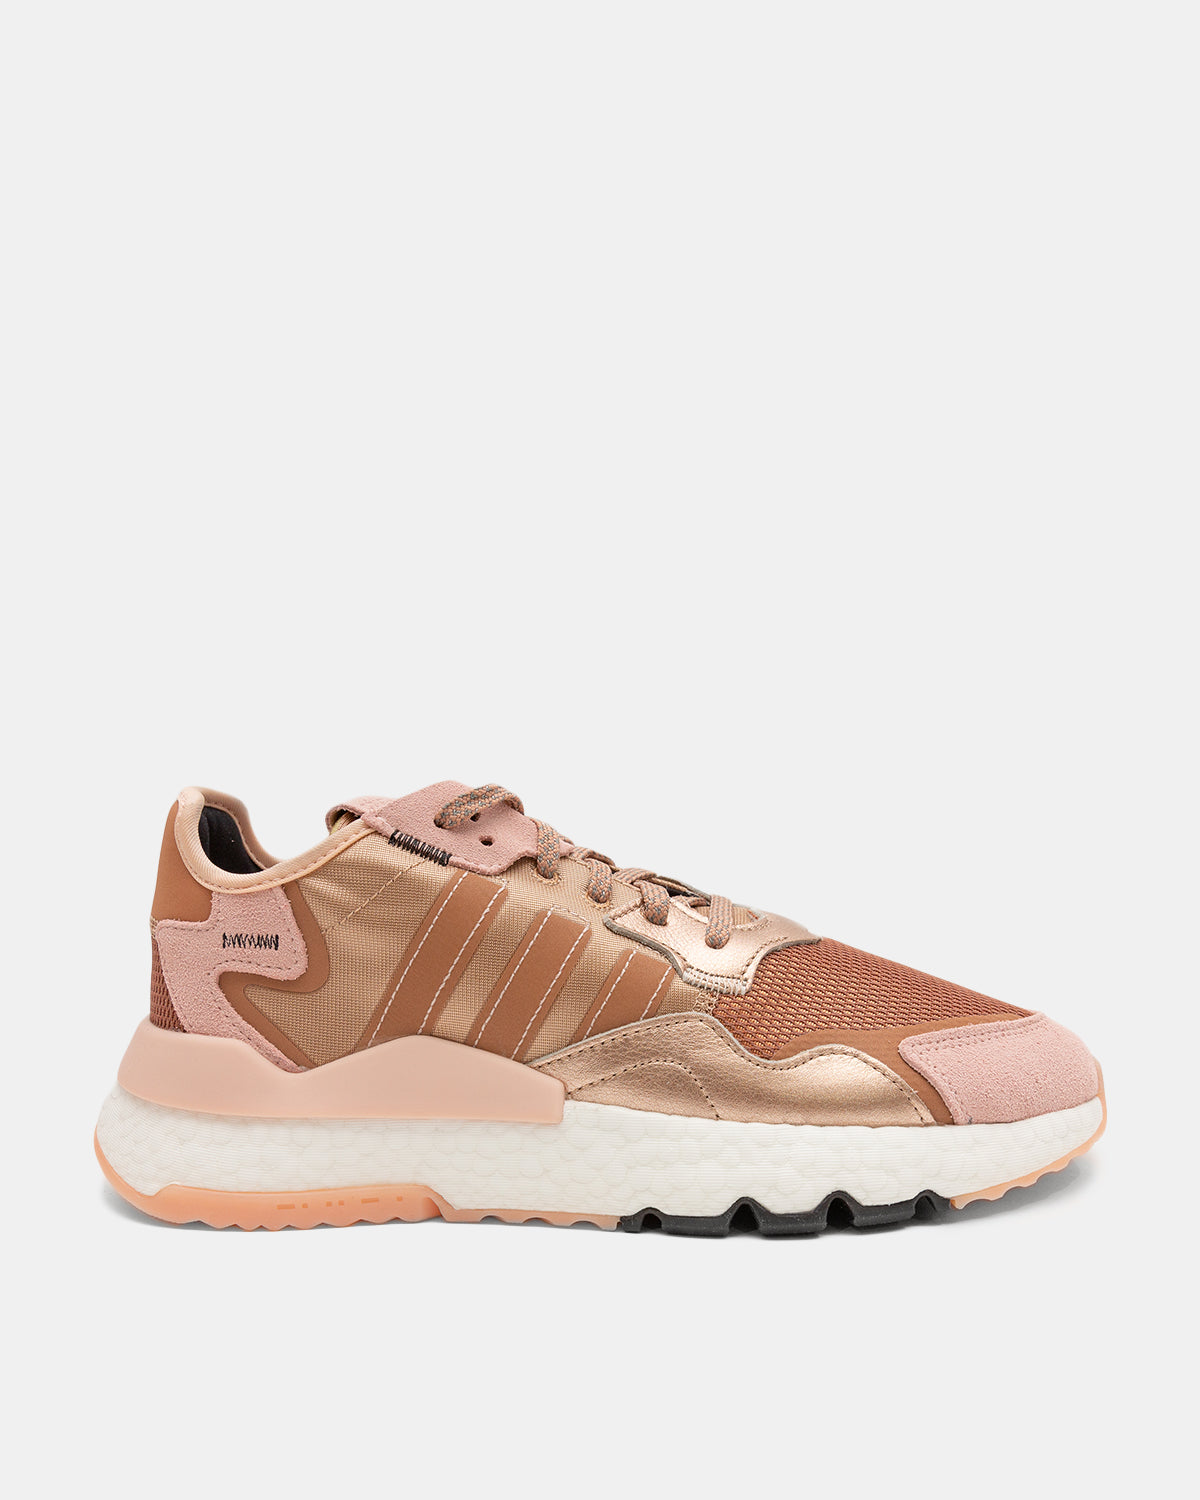 adidas - Women's Nite Jogger (Rose Gold Metallic | Vapor Pink | Core Black)